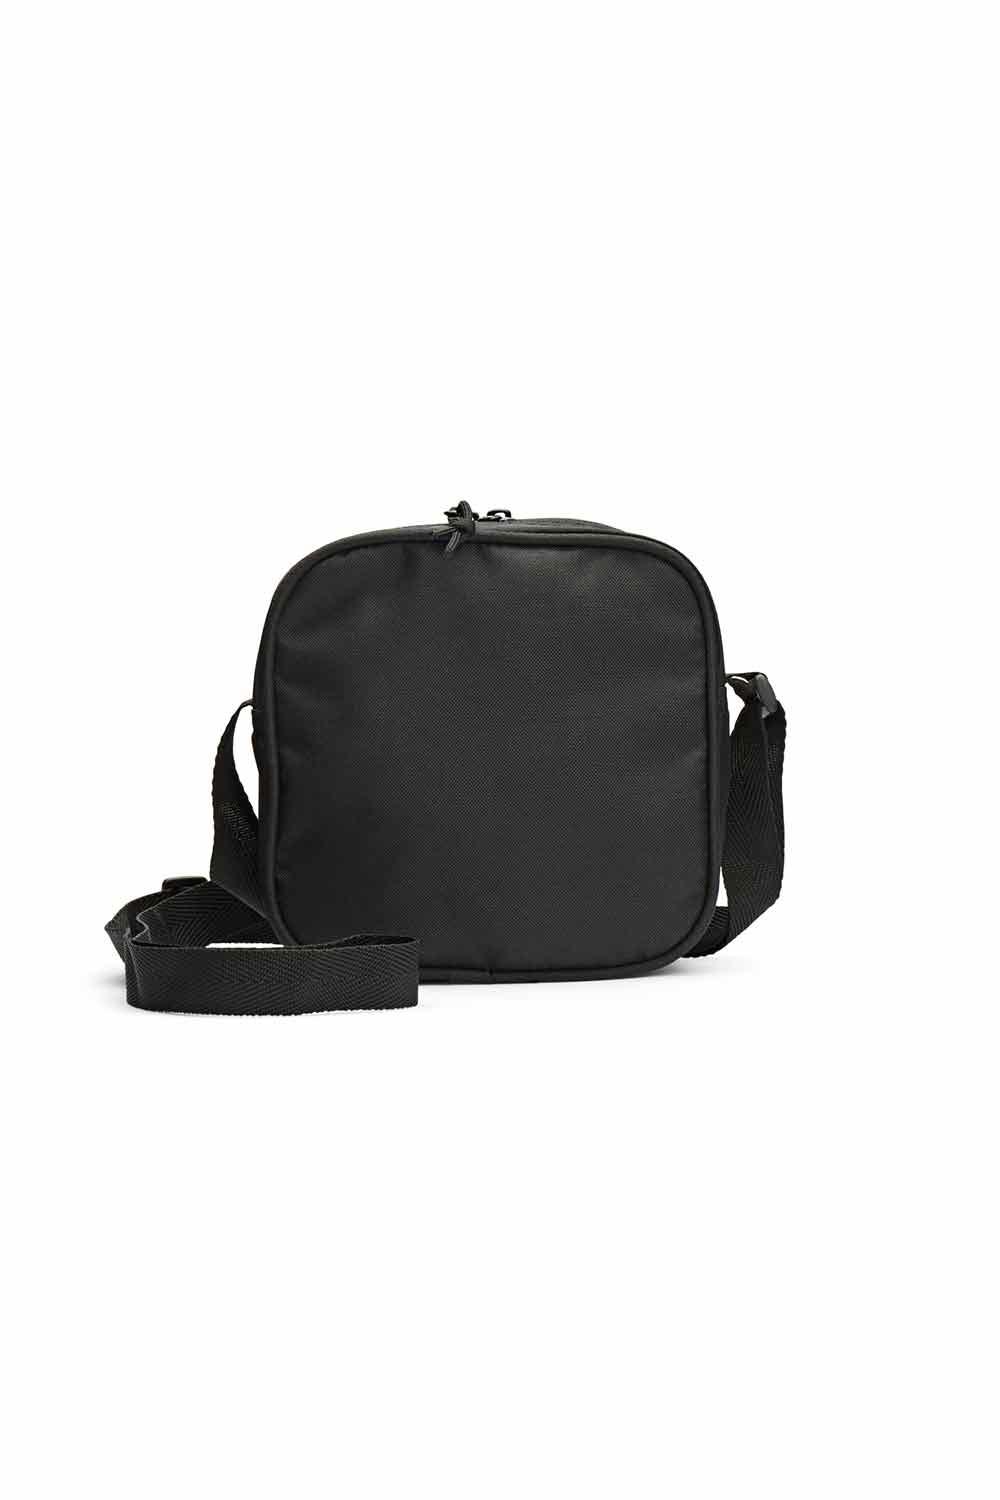 Polar Skate Co Cordura Dealer Bag - Black